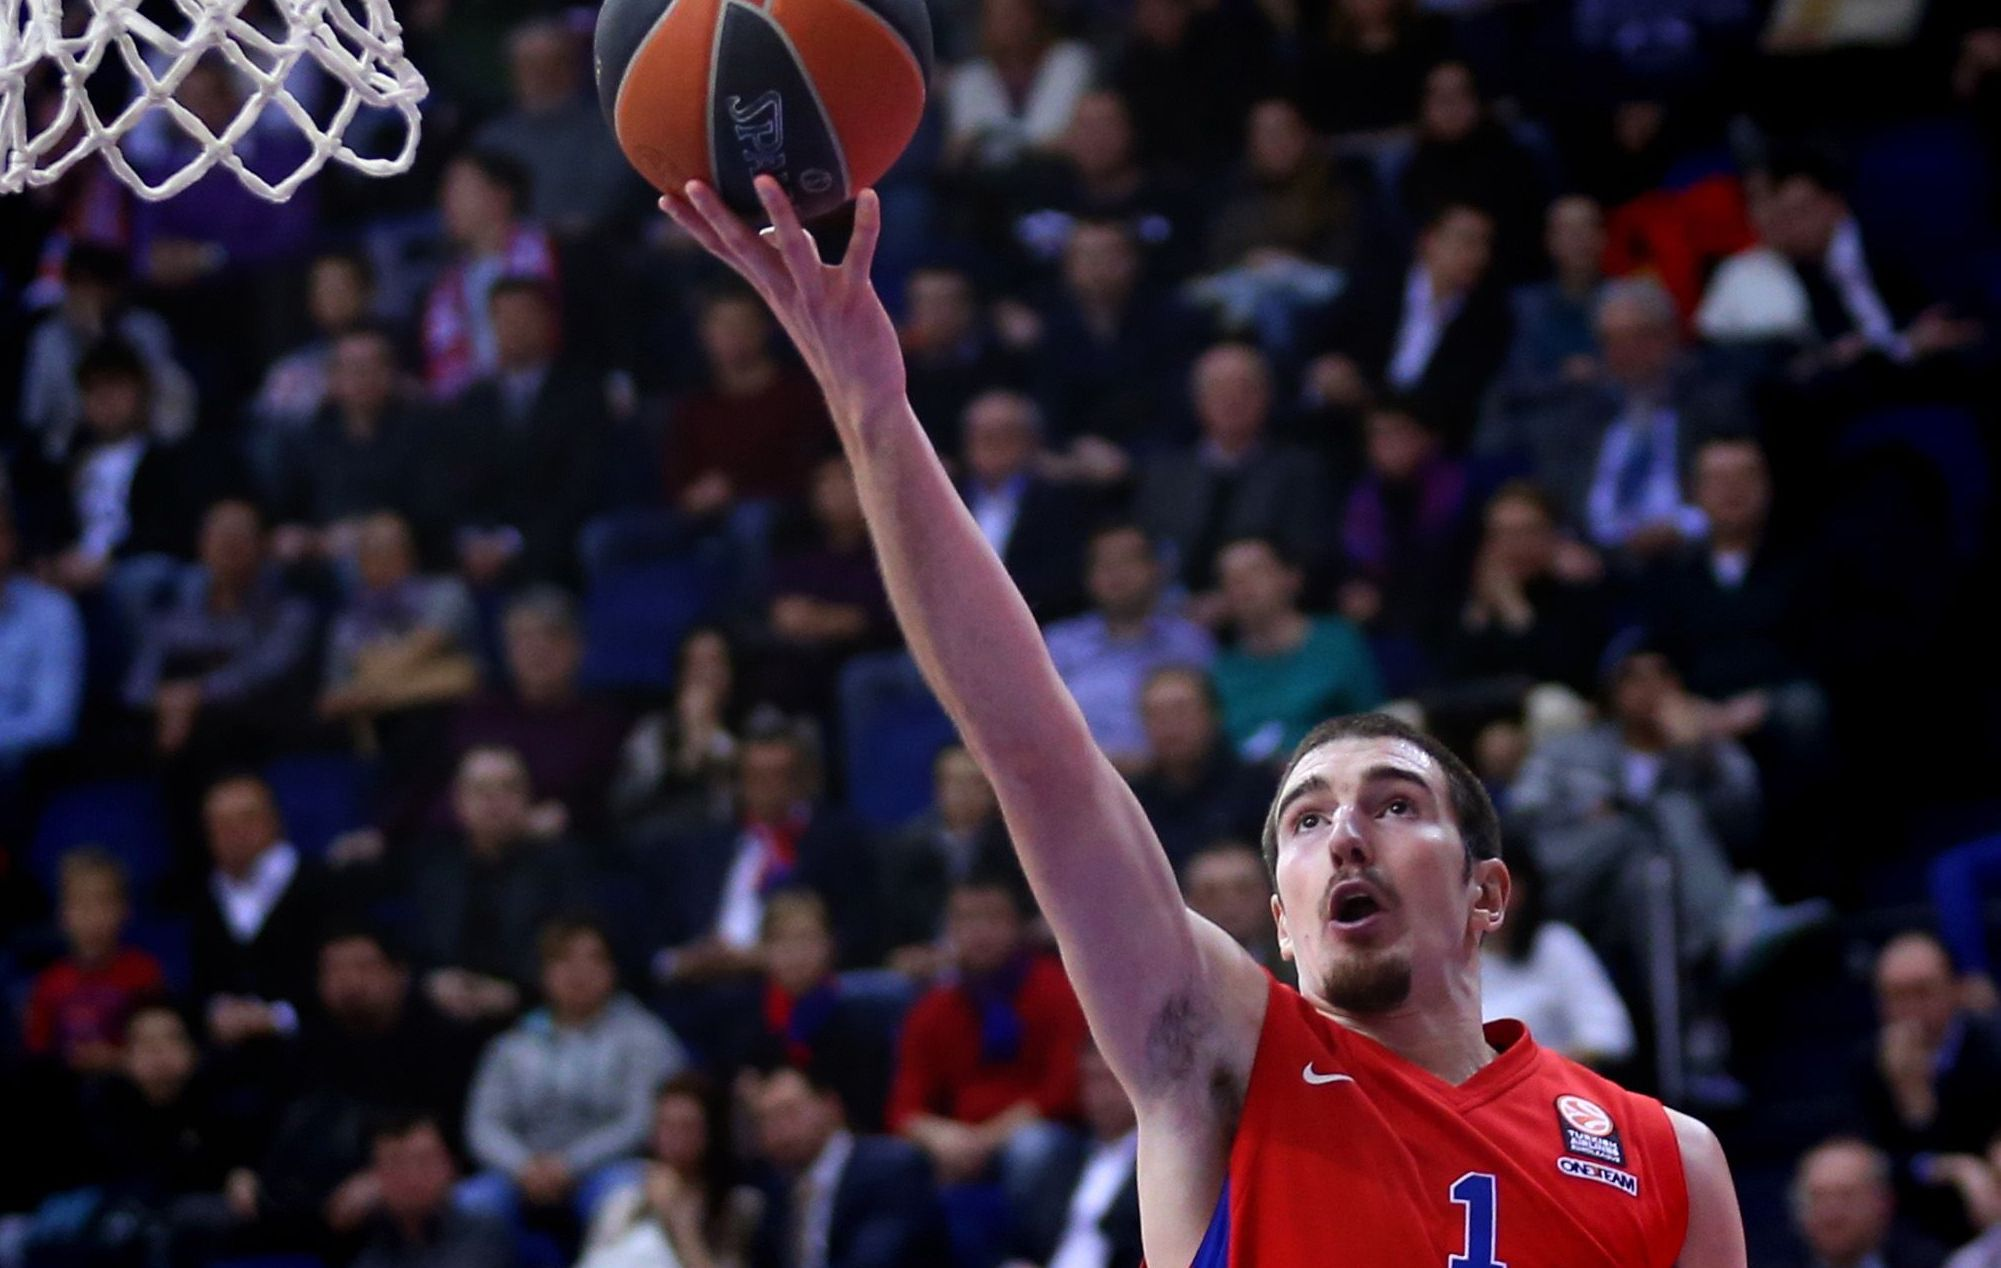 Basket - Euroligue - De Colo, un peu plus pr�s des �toiles